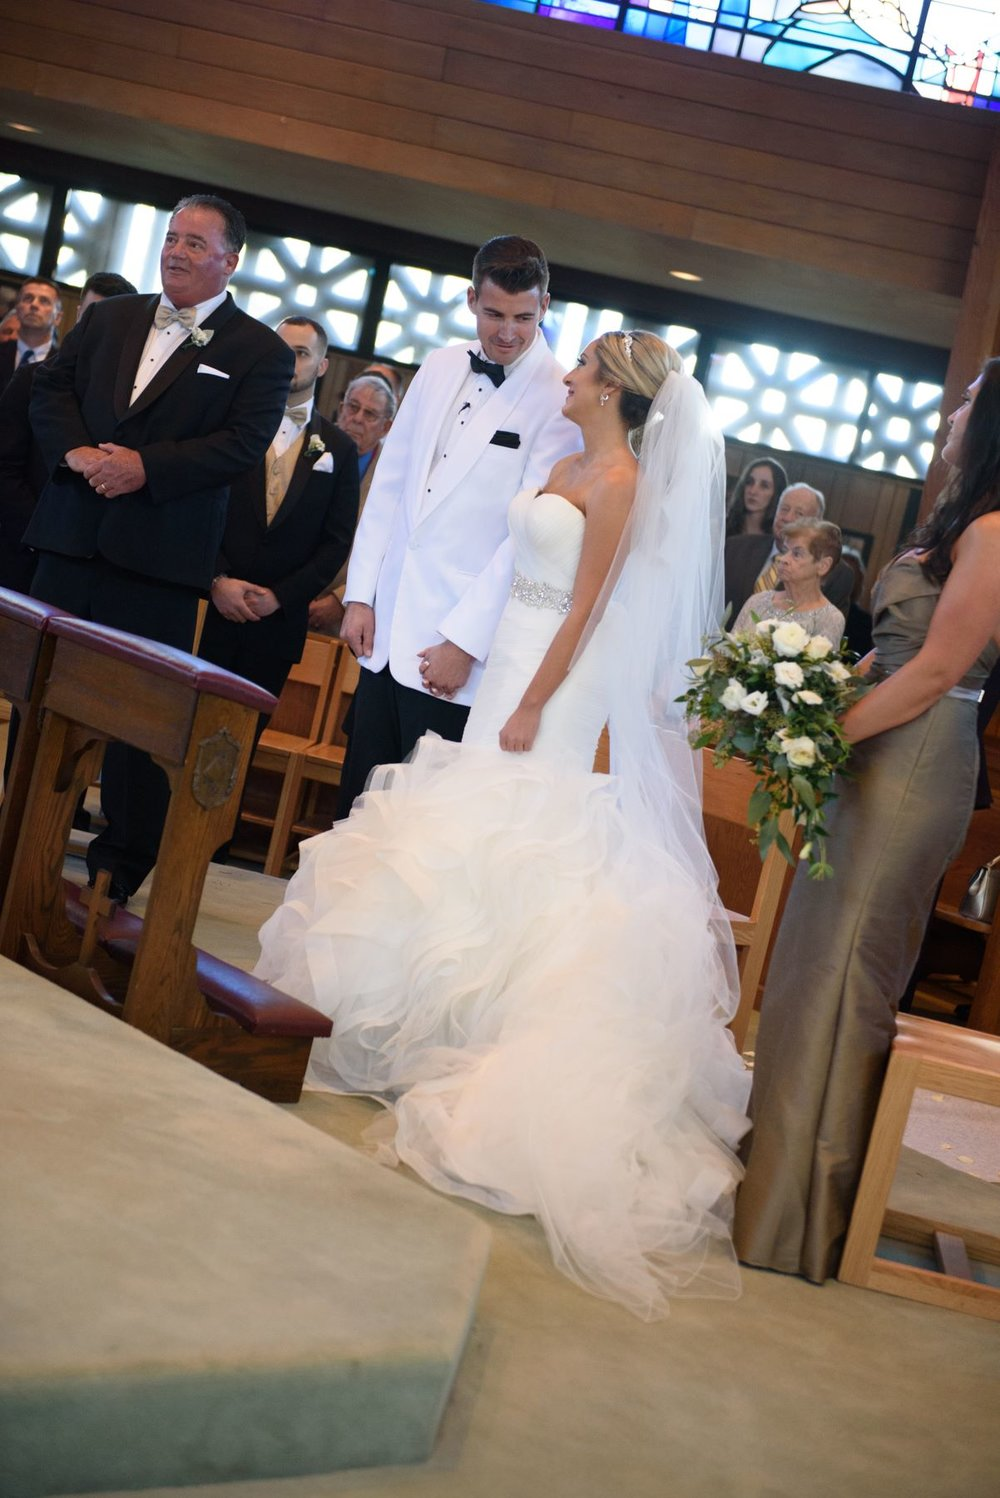 bride-and-groom-staring-each-other-church.jpg